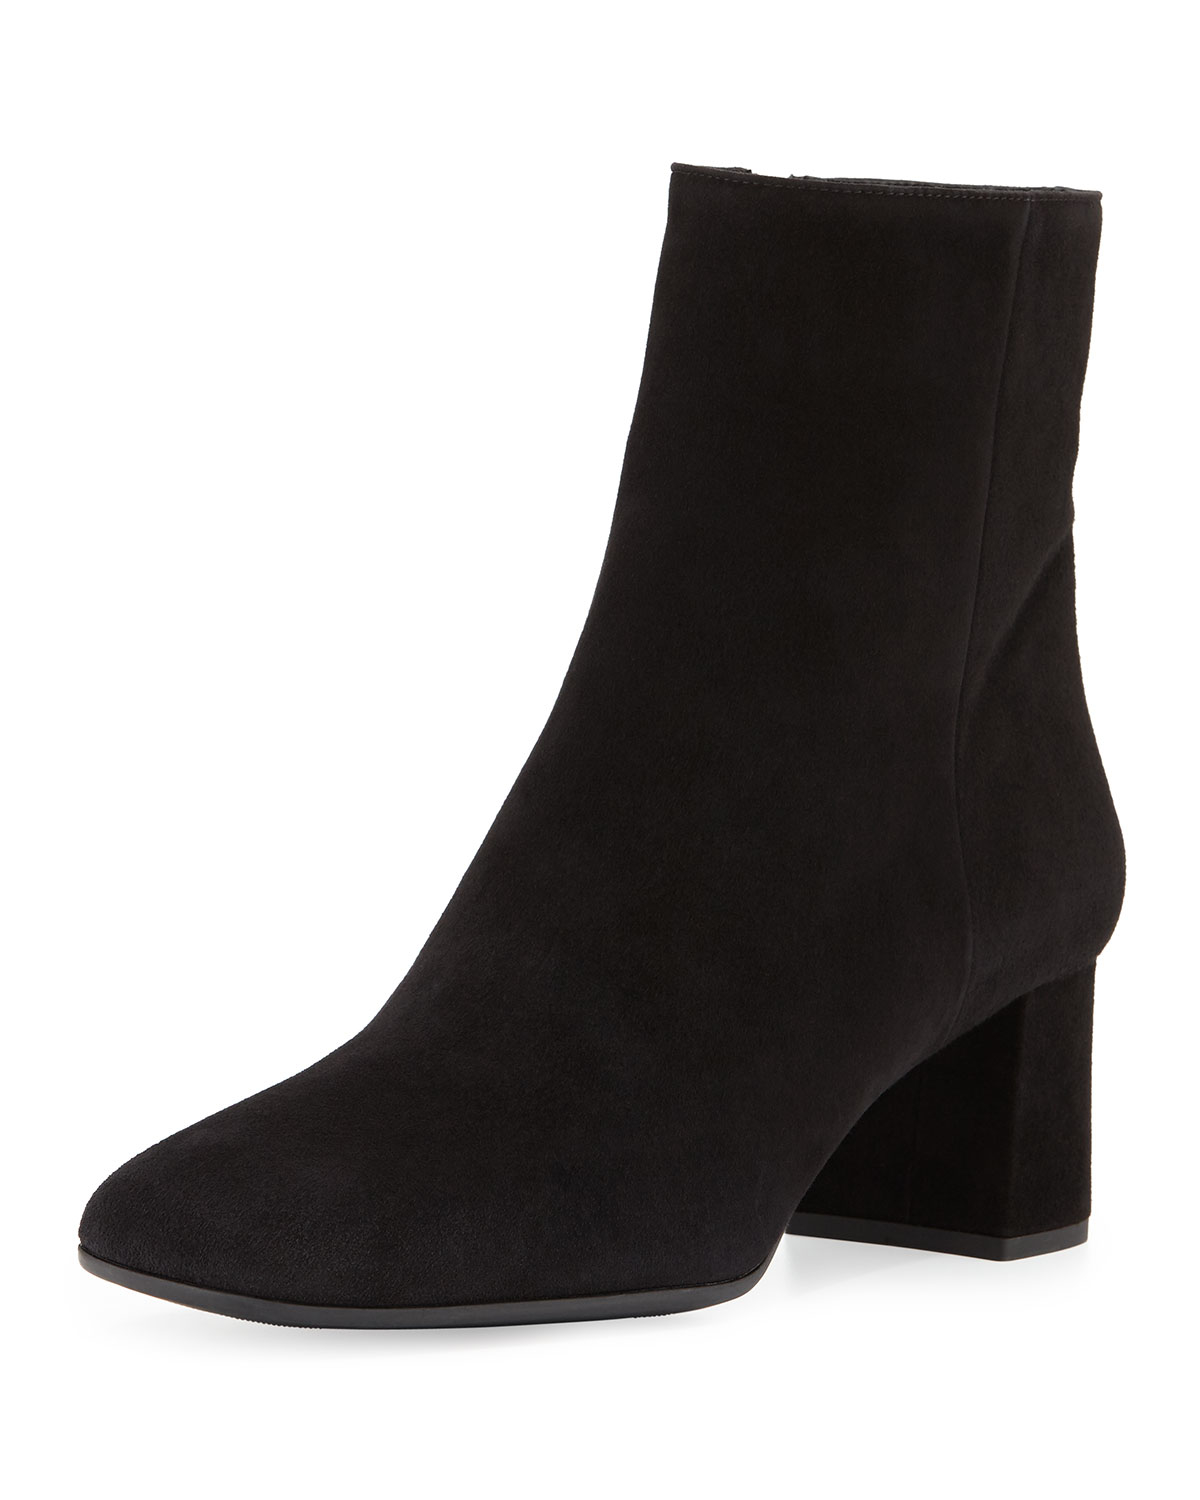 Prada Suede Square-Toe Booties best place online cheapest price cheap price low cost choice online discount cheapest price s3KXu